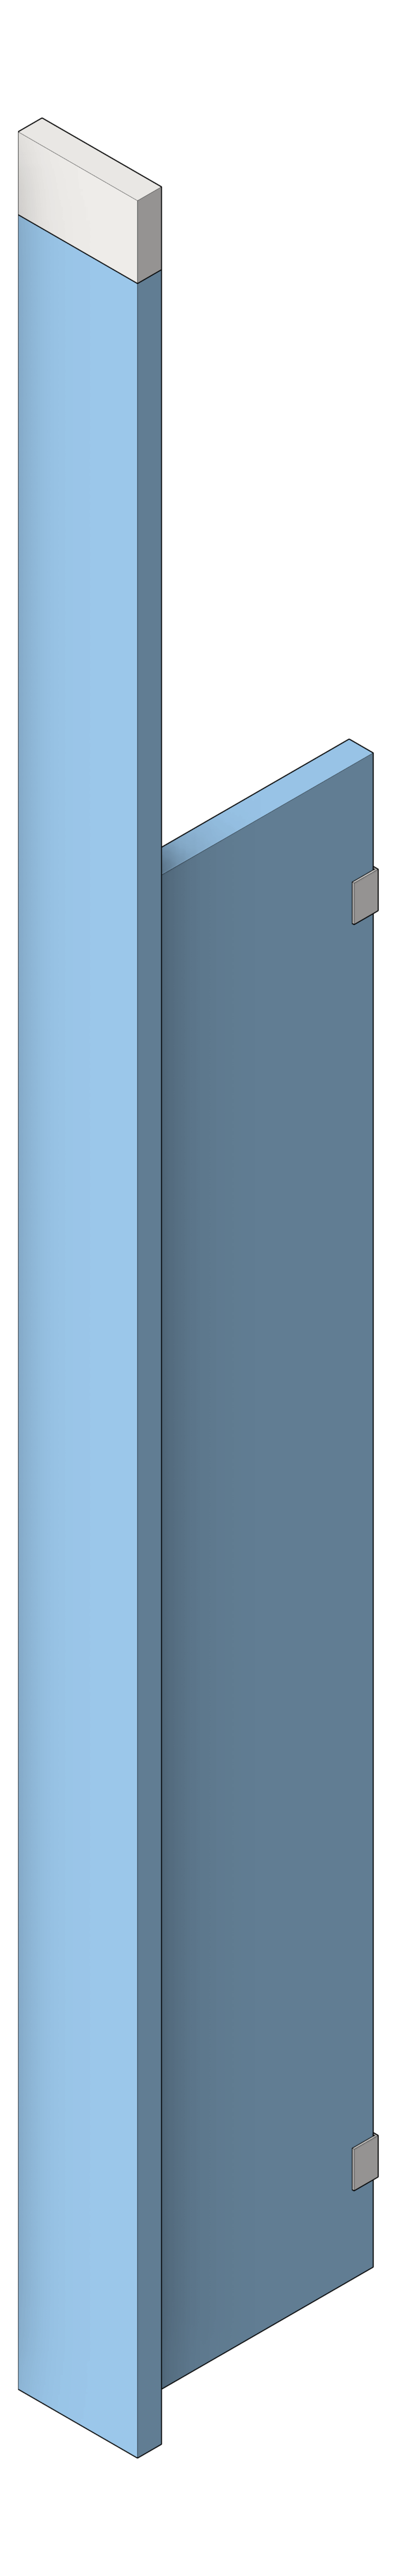 UrinalScreen_CeilingHung_AccuratePartitions_HDPE_3D Shaded